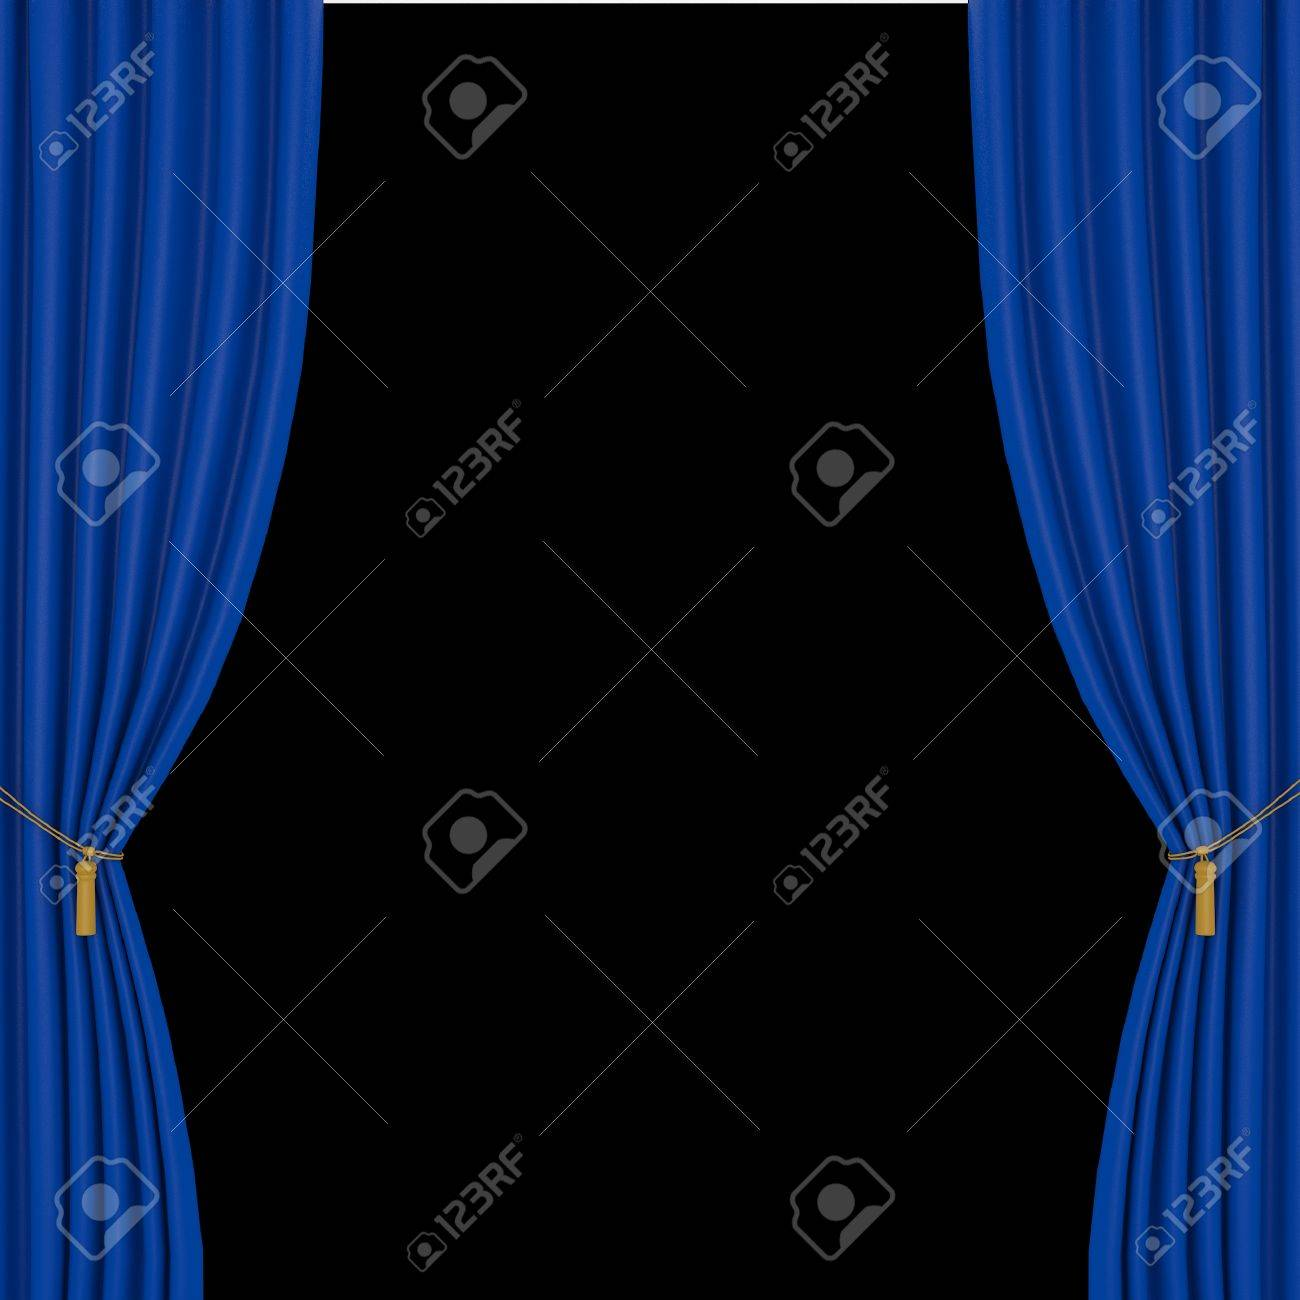 Black And Blue Curtains Blue Curtains On A Black Background